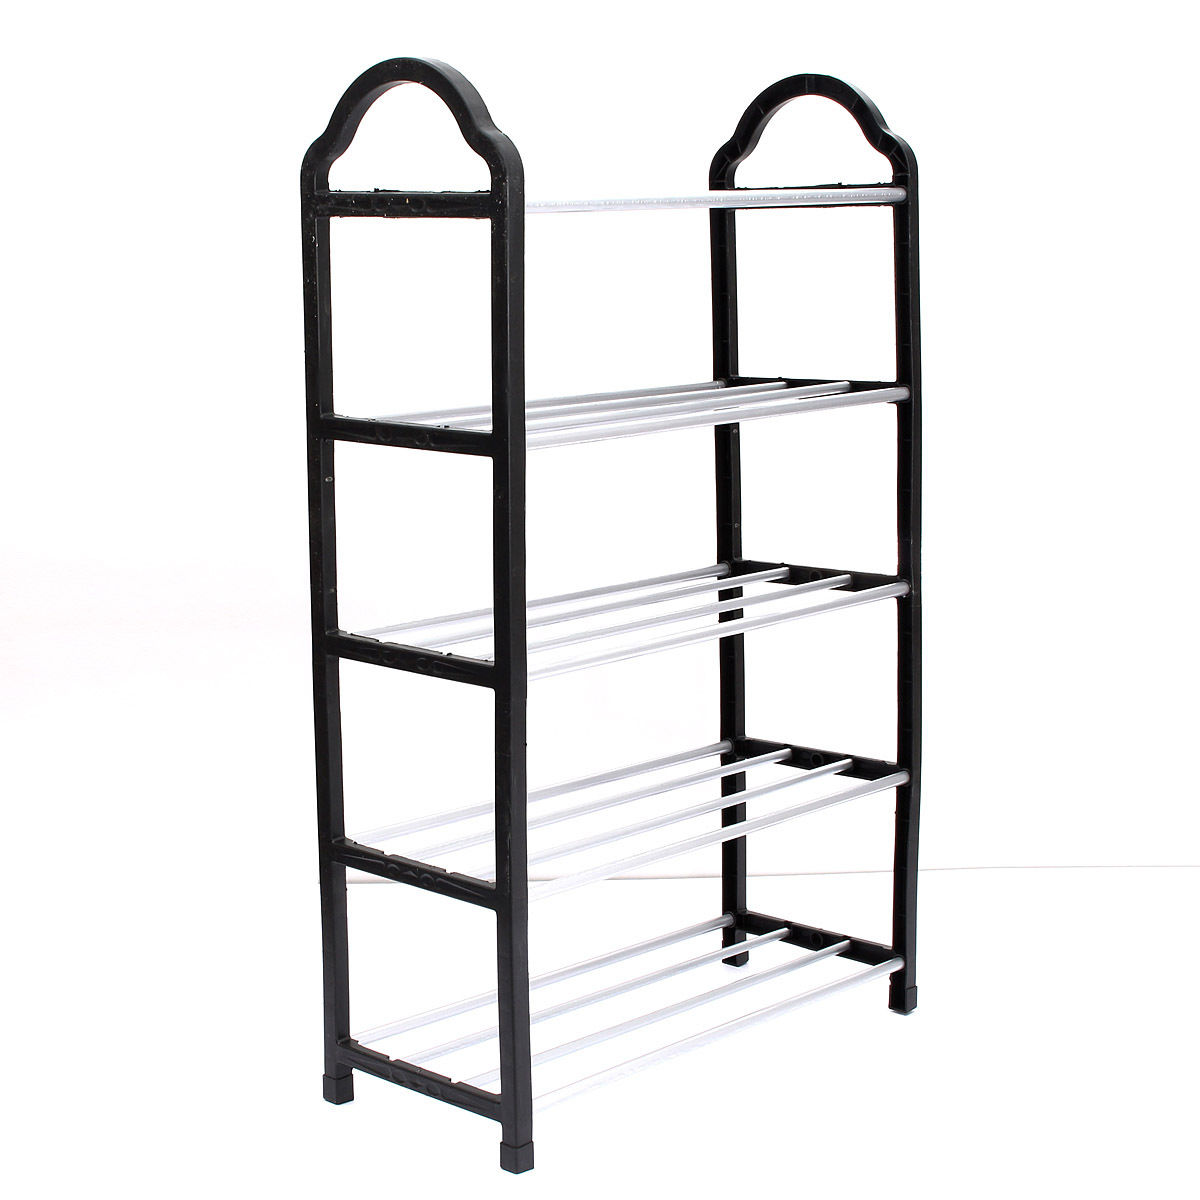 купить  LHBL 5 Tier Home Storage Organizer Cabinet Shelf Space Saving Shoe Tower Rack Stand Black  онлайн